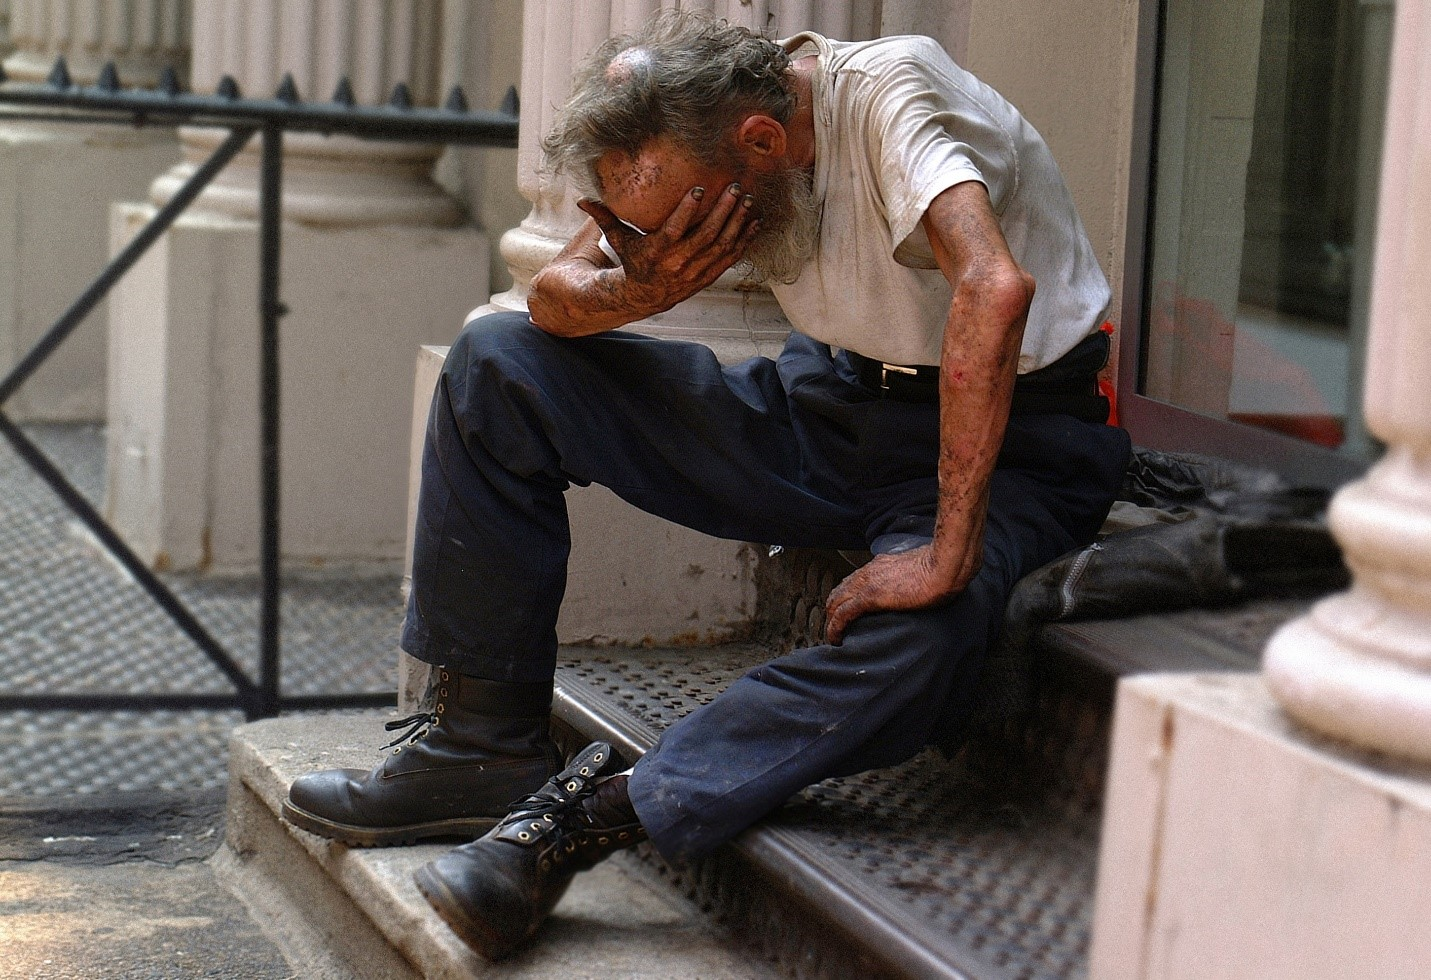 5 Types of Homeless People: It's More Complicated Than You Think